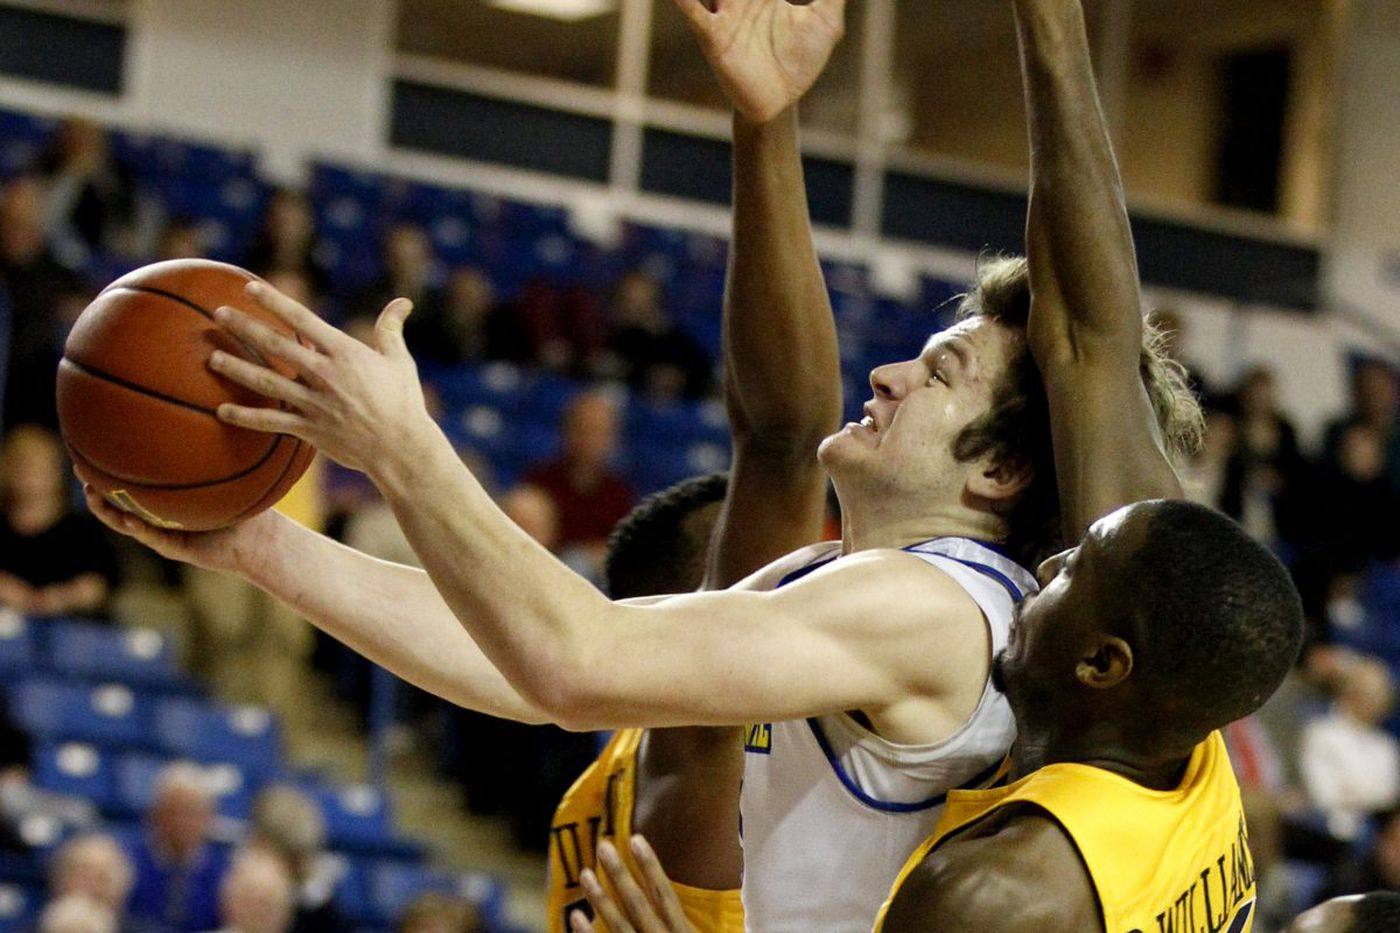 Ryan Daly transferring from Delaware to St. Joseph's